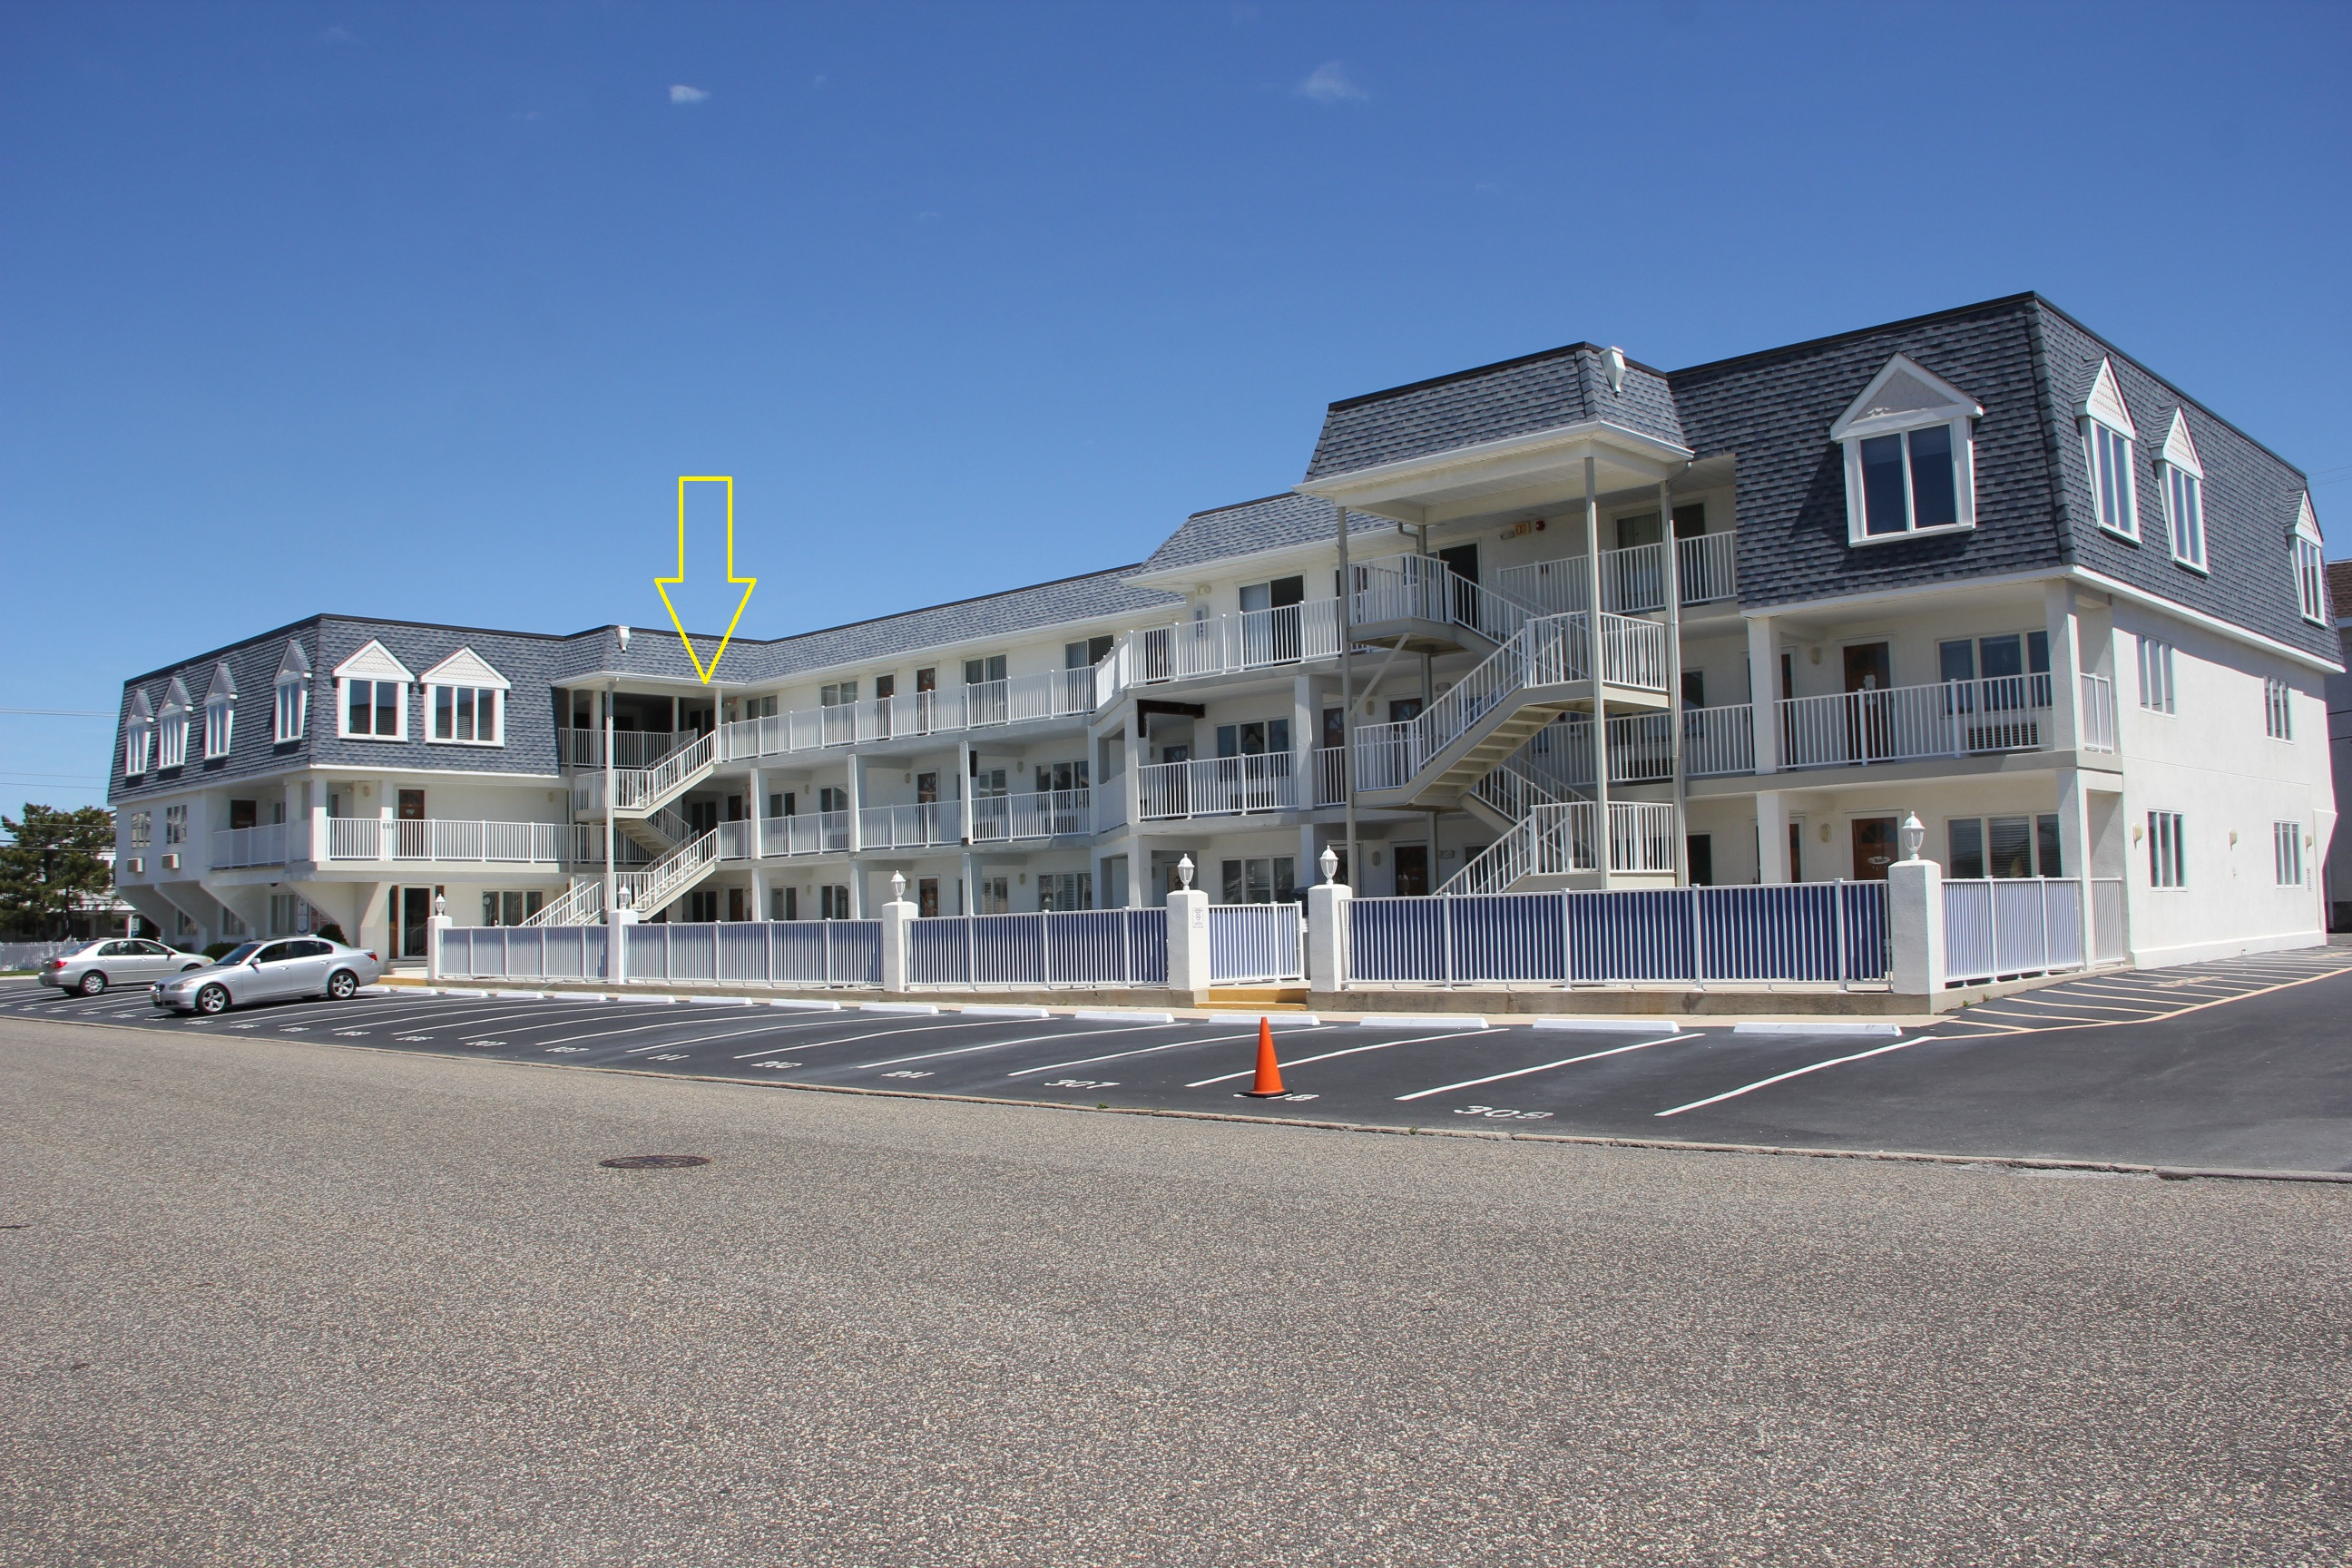 177 80th Street 303 - Avalon, NJ